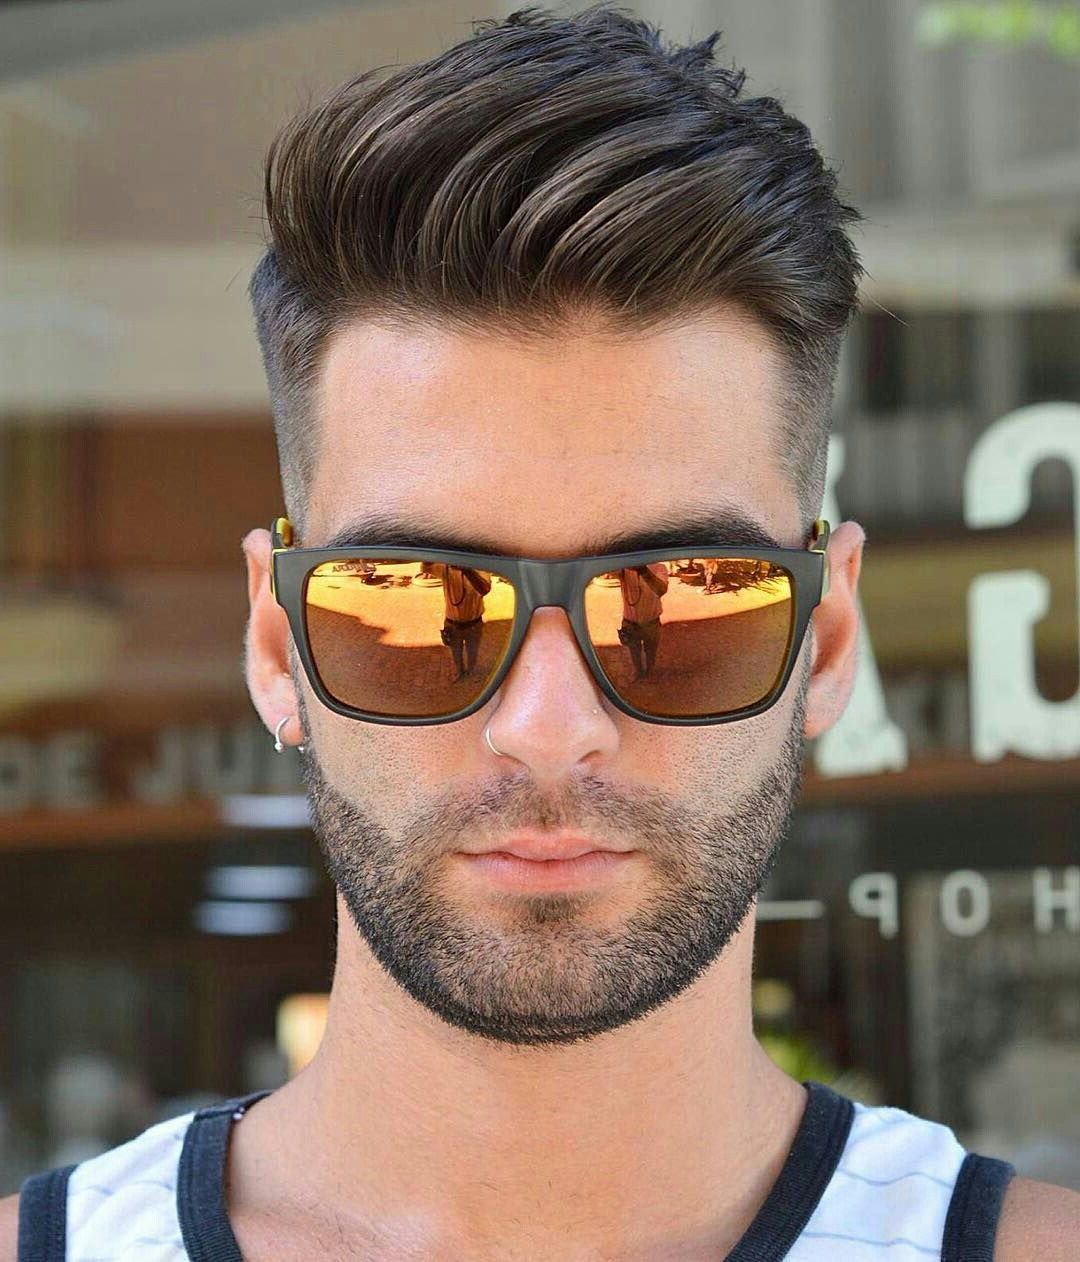 Trendy Medium Haircuts For People With Glasses With Glasses (View 7 of 20)